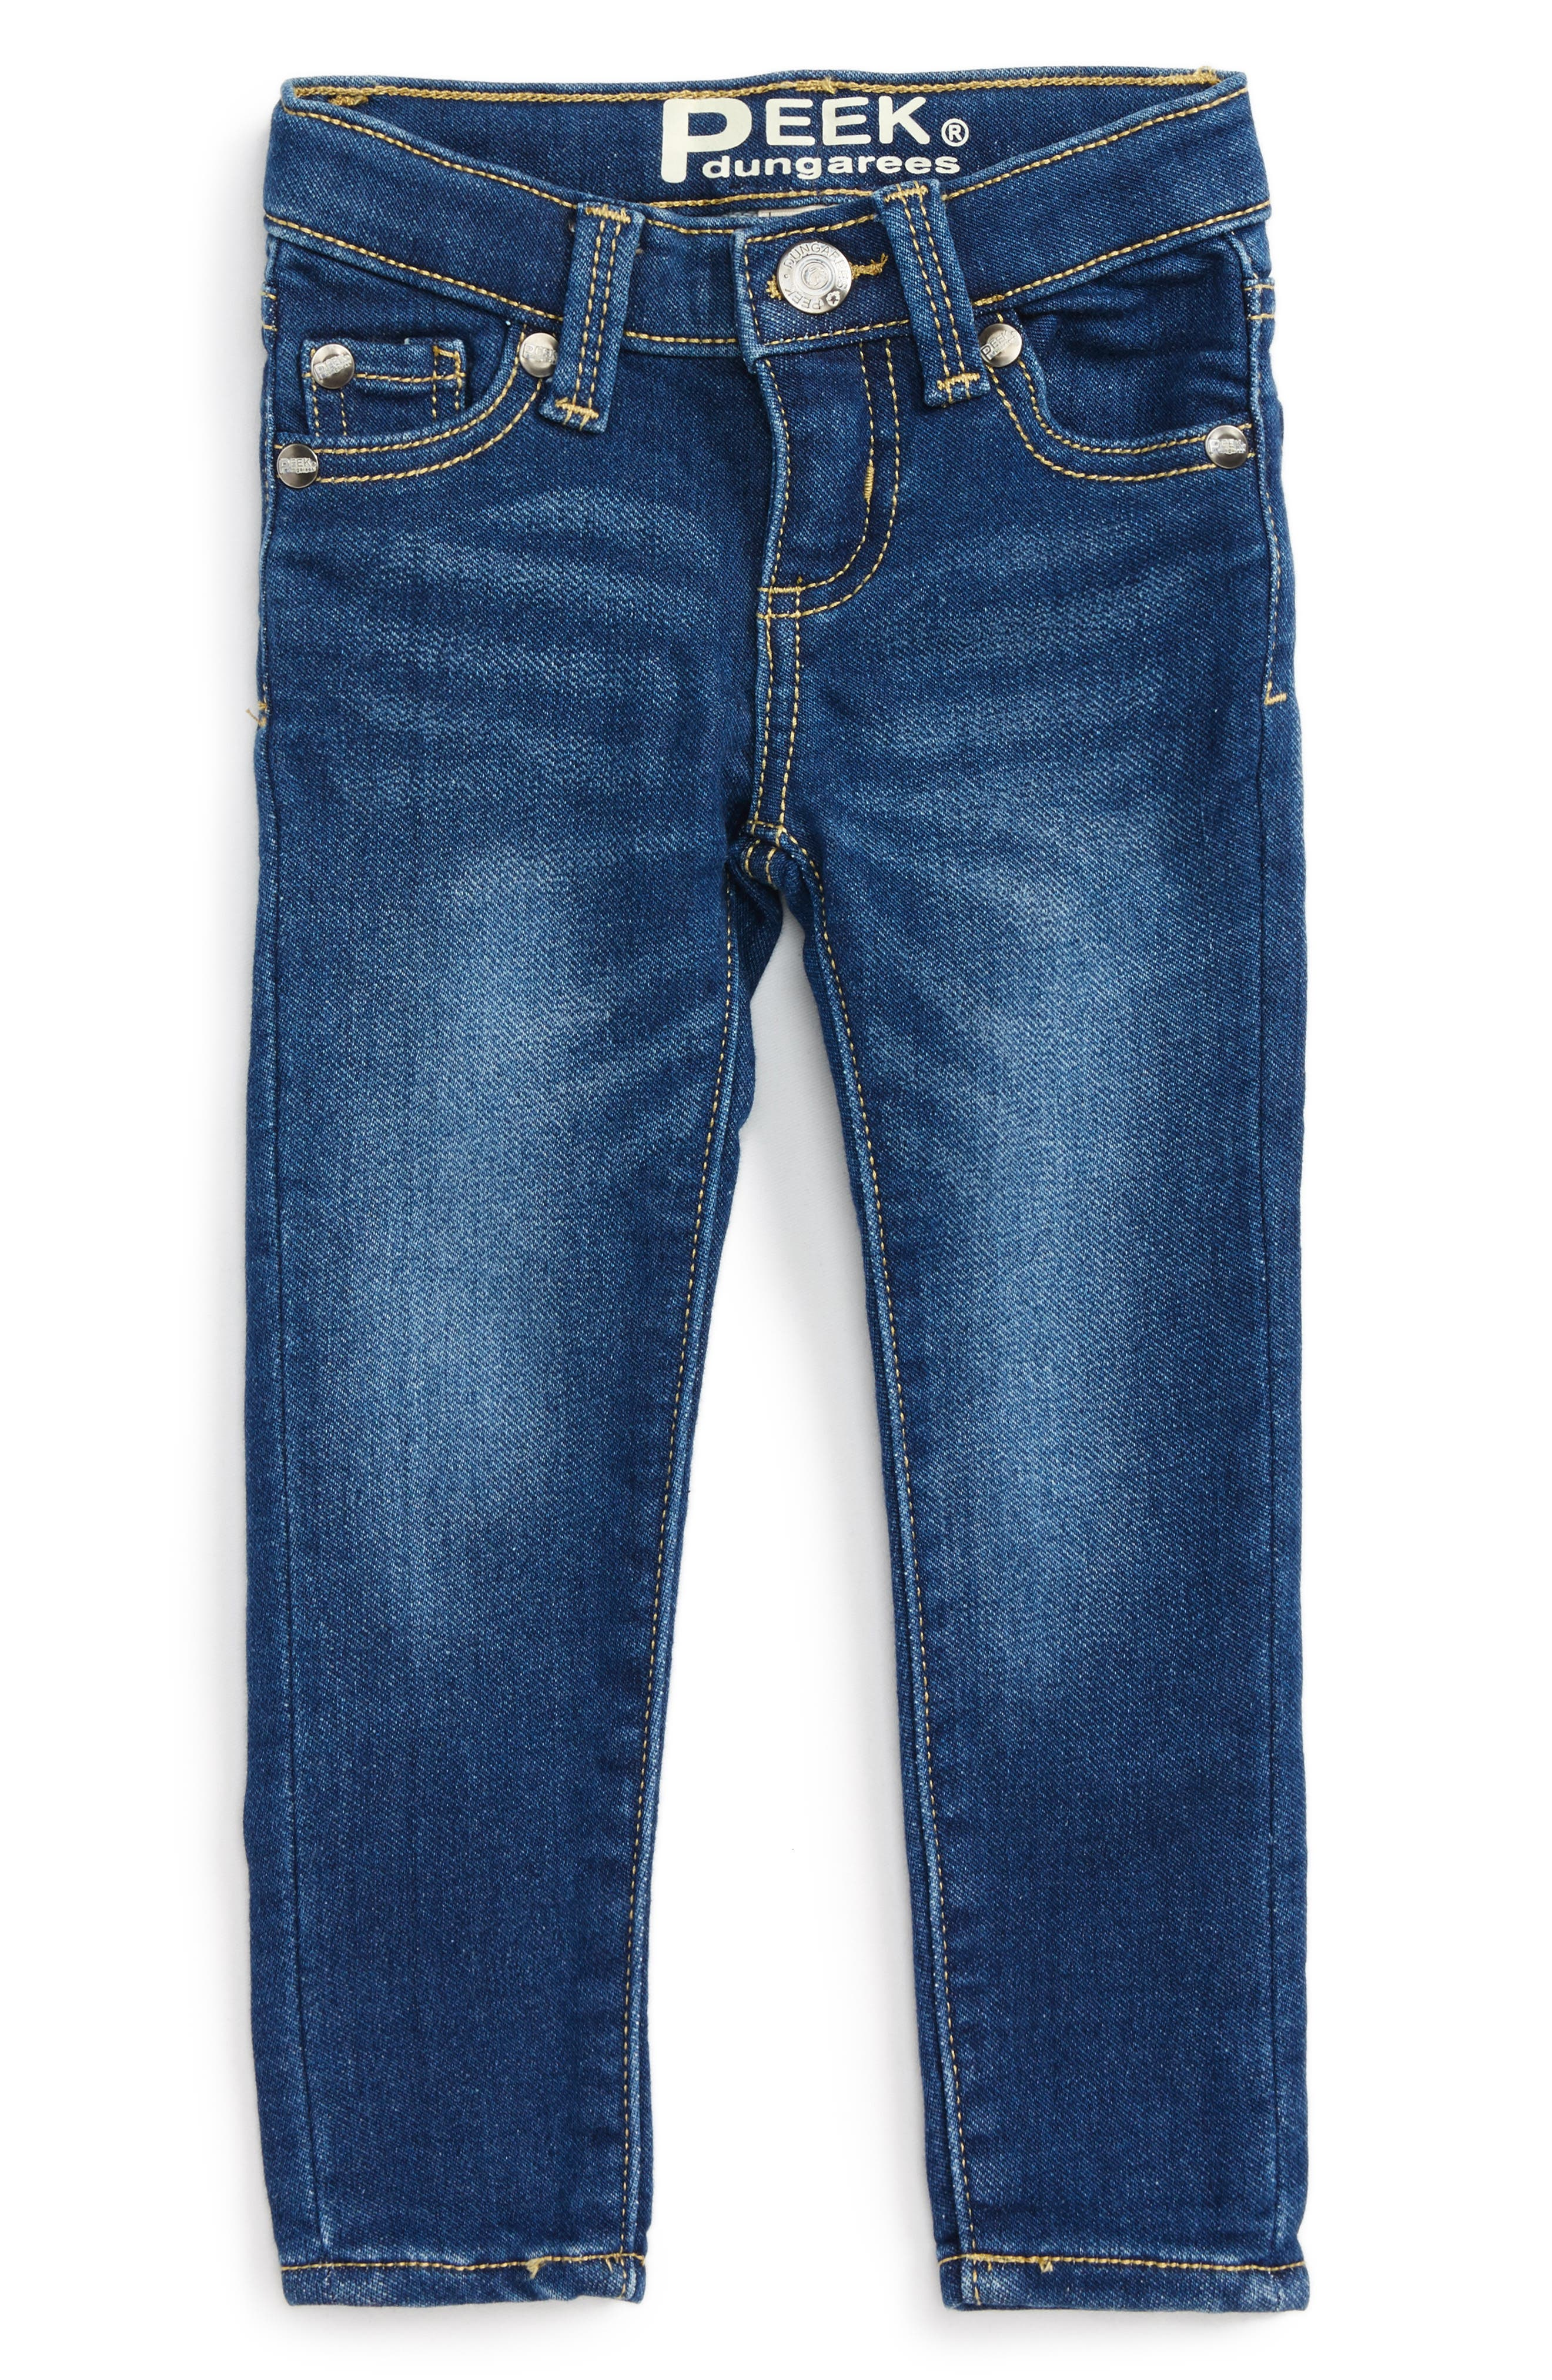 Taylor Skinny Jeans,                         Main,                         color, Medium Authentic